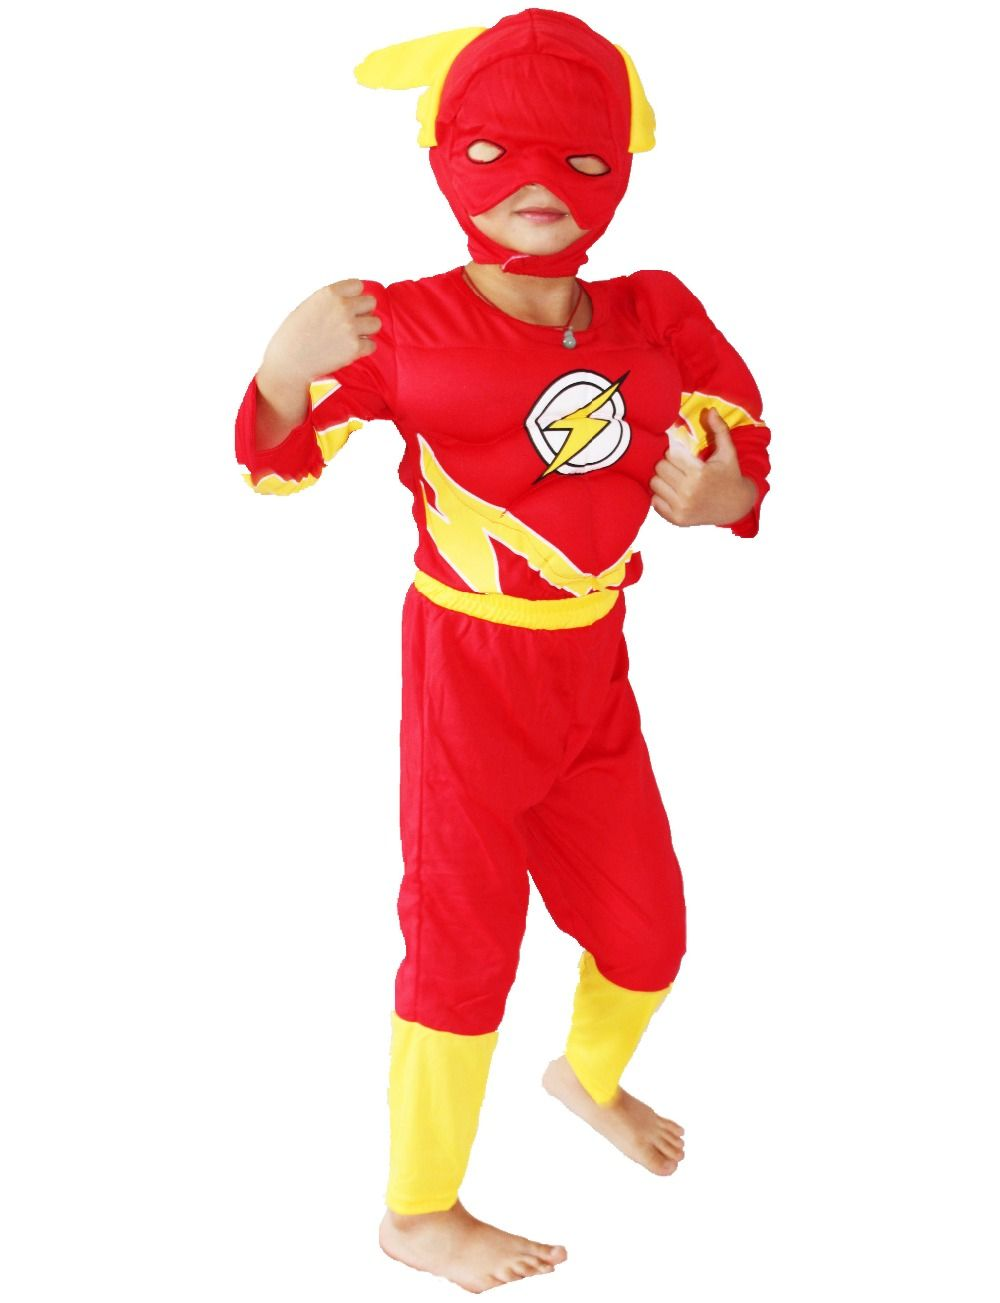 3 - 7 years Party Kids Comic Marvel Flash/Barry Allen Muscle Halloween Costume Kid Flash boy roll play clothing sizeS-XXL  sc 1 st  Pinterest & Marvel Kids Comstume The Flash | Costumes | Pinterest | Flash boys ...